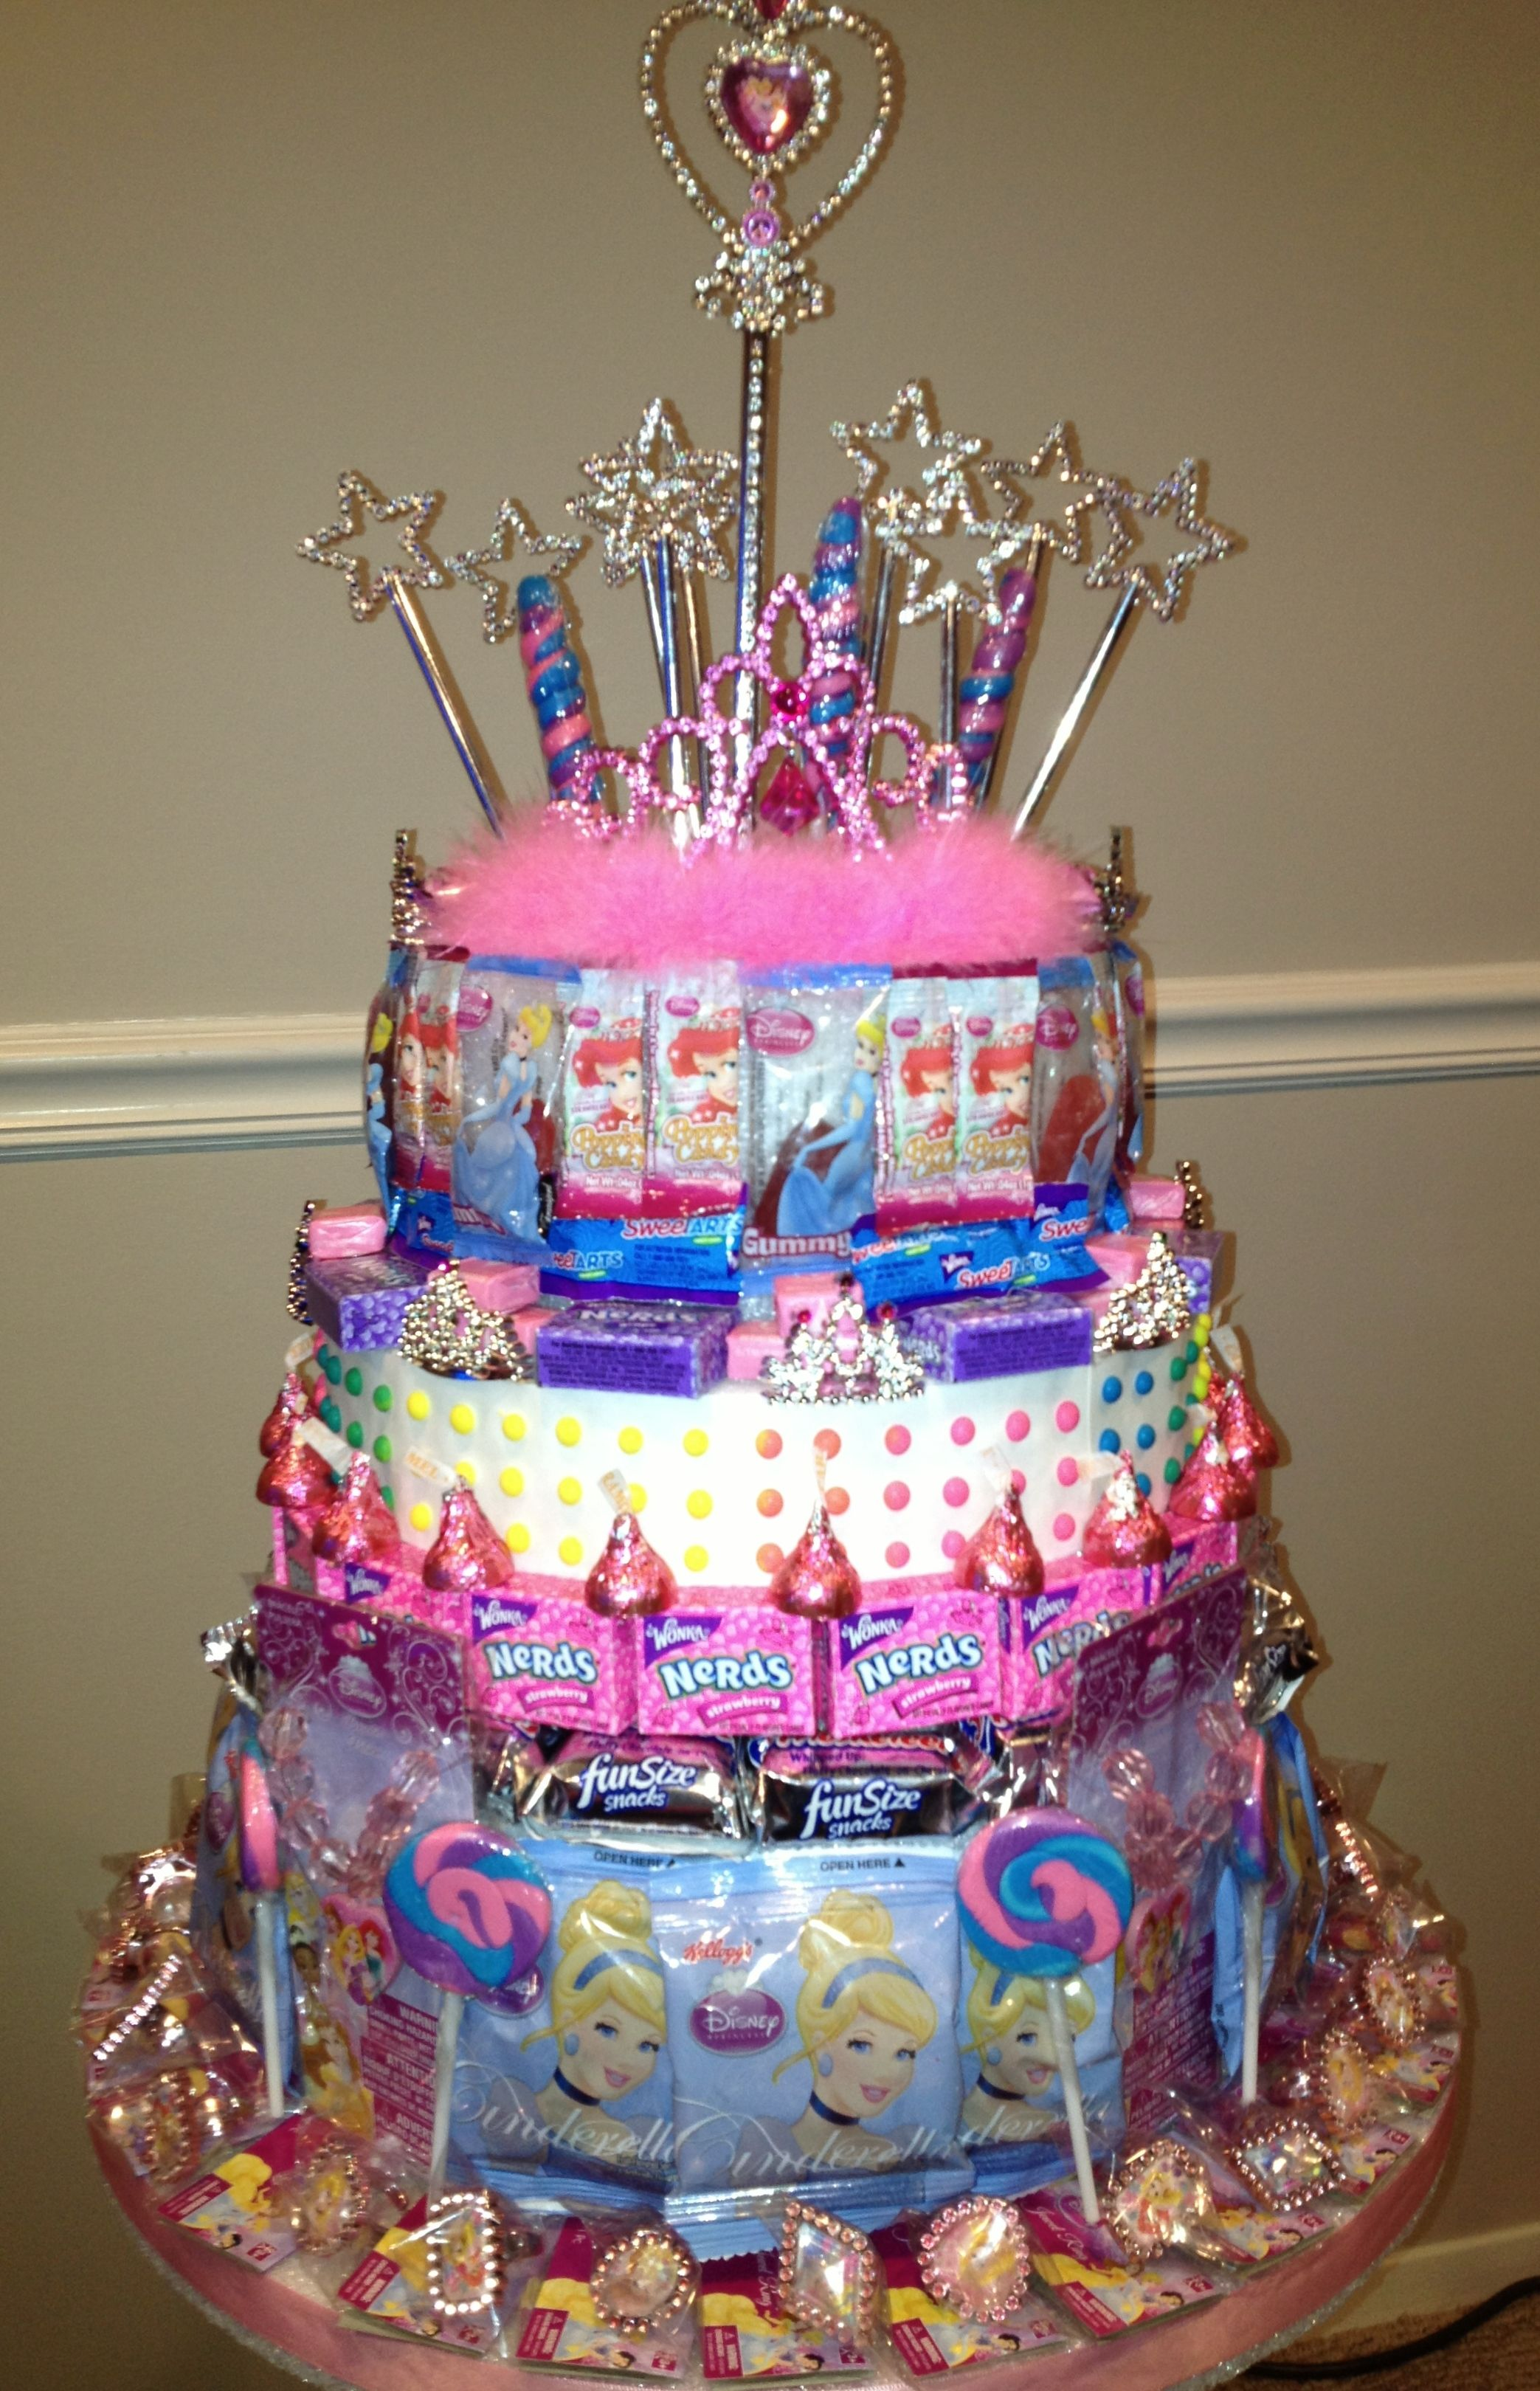 Disney princess party candy cake tower filled with